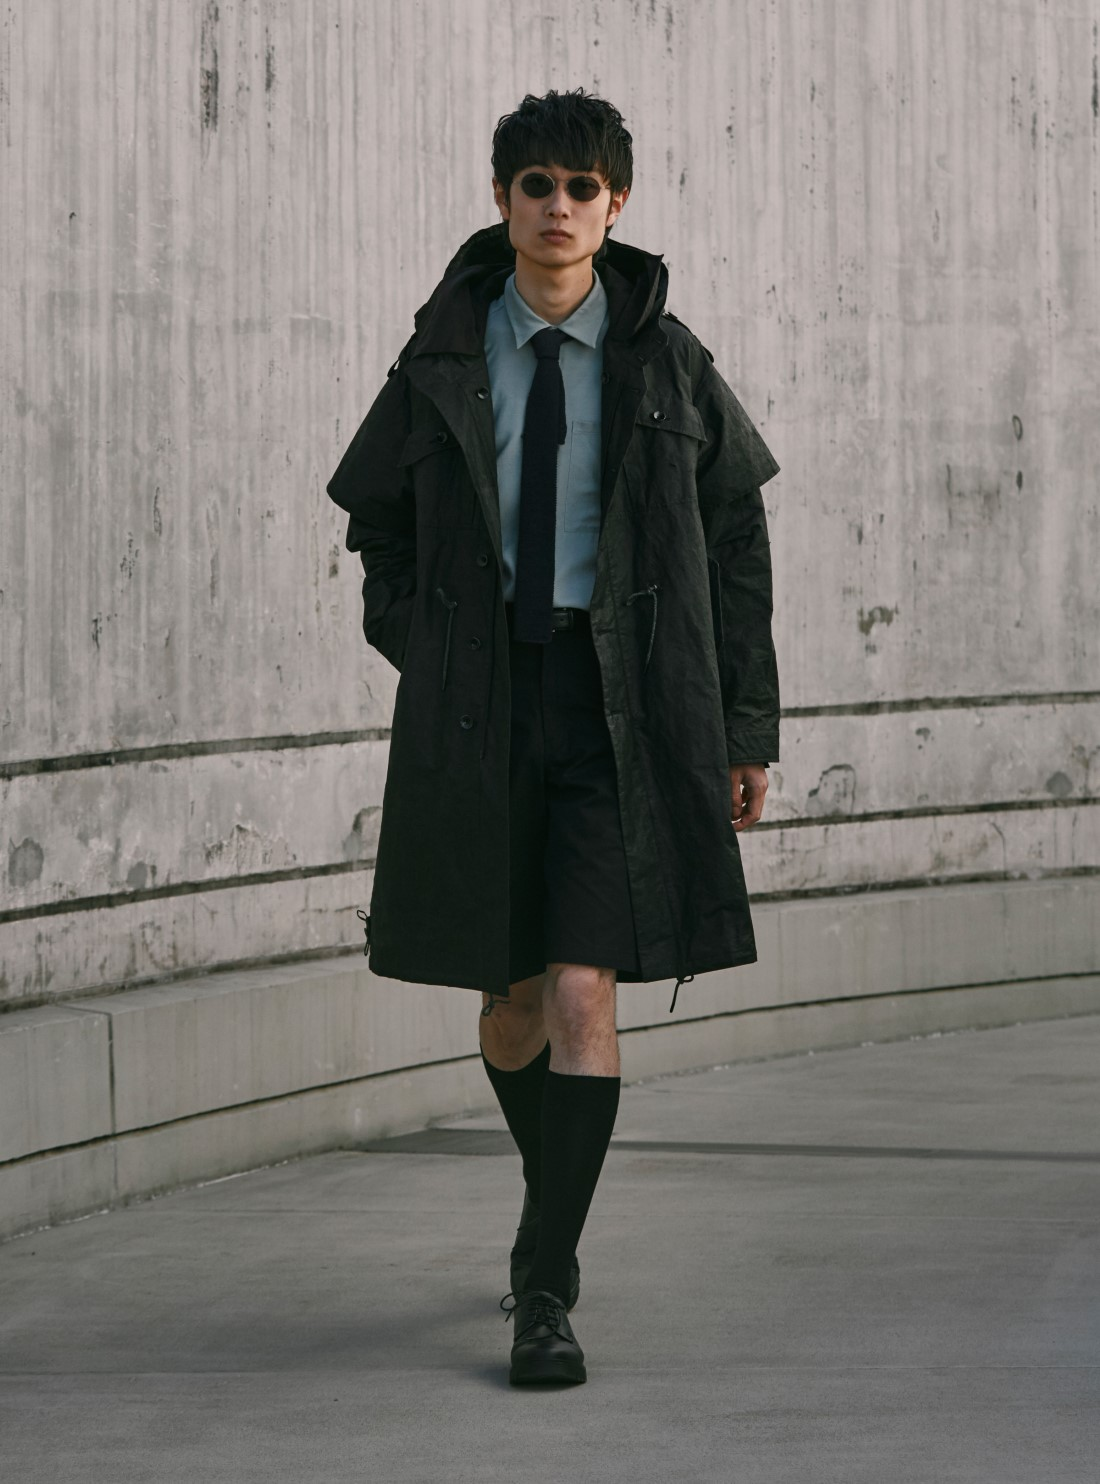 Koh T - Automne-Hiver 2021-2022 - New York Fashion Week